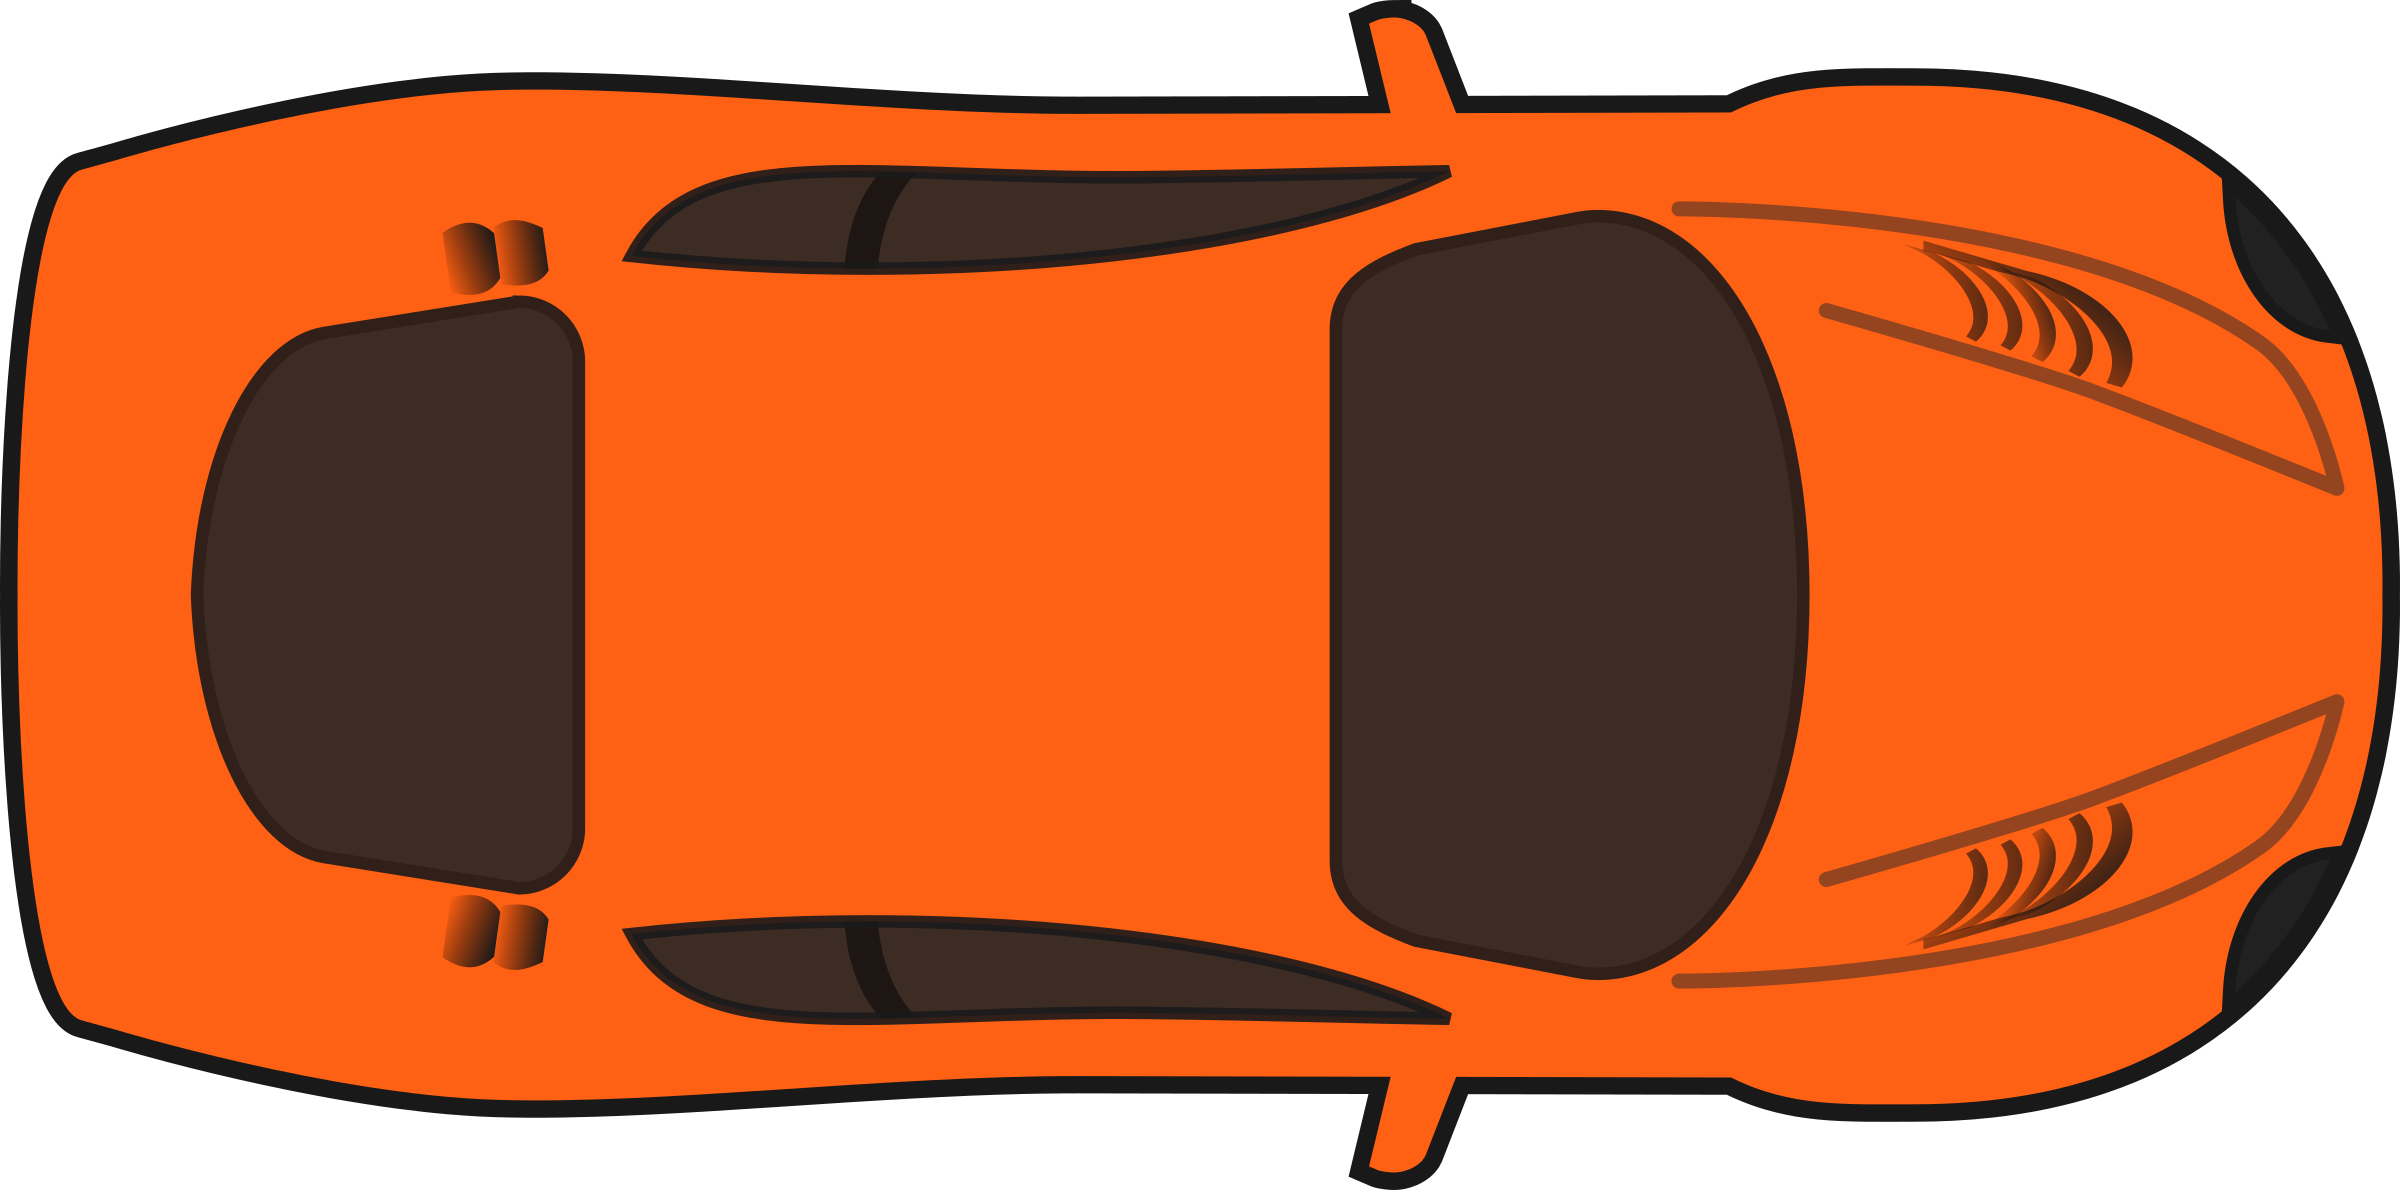 Top down car clipart svg free Clipart - Orange Racing Car (Top View) svg free